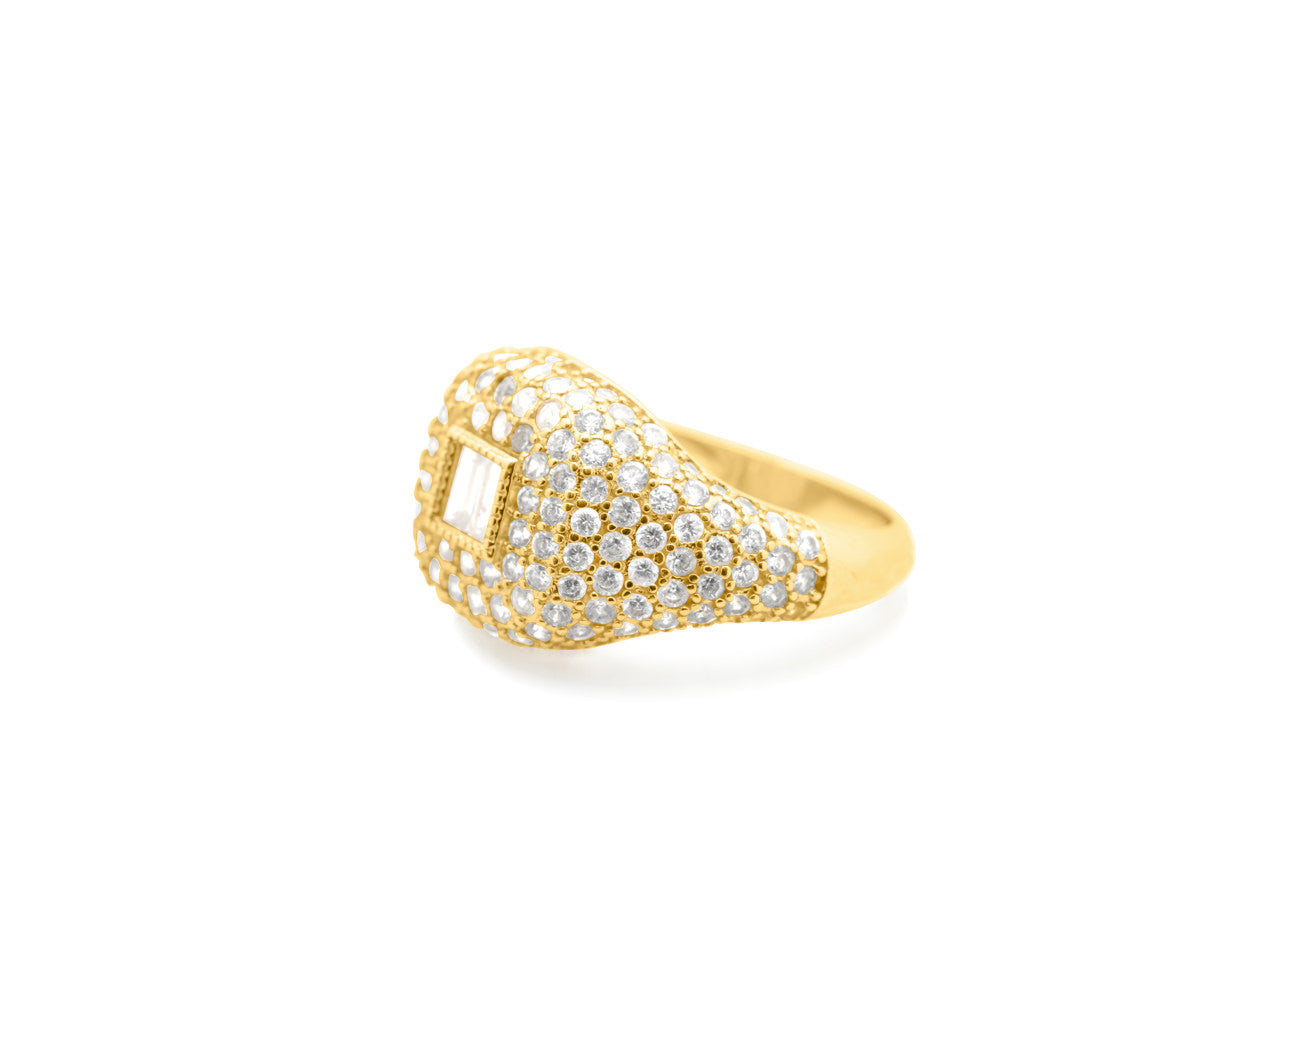 FAX Jewelry | 'Forever Thing' Micro Pave Ring | 18K Gold Plated with White Stones | side detail view